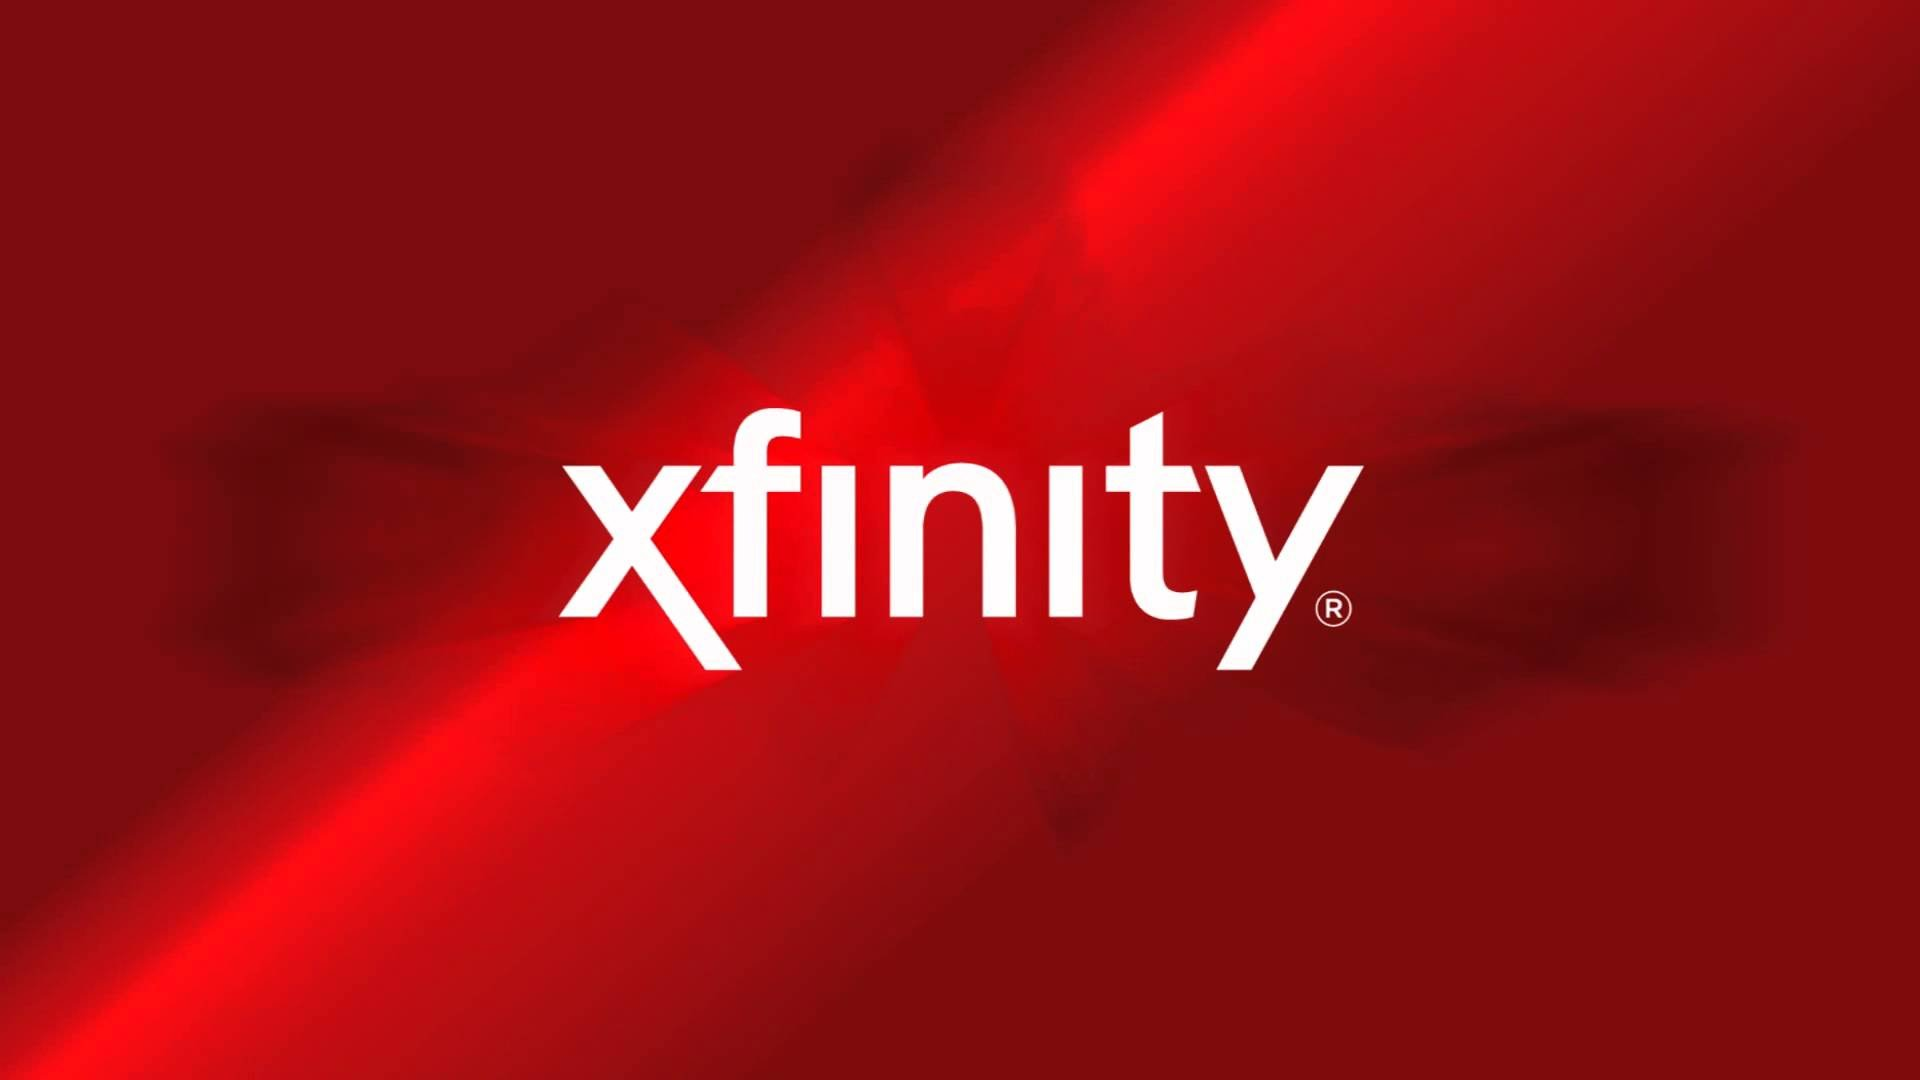 Comcast Opens Free Xfinity Wifi Service Across Florida To Aid Residents Emergency Personnel